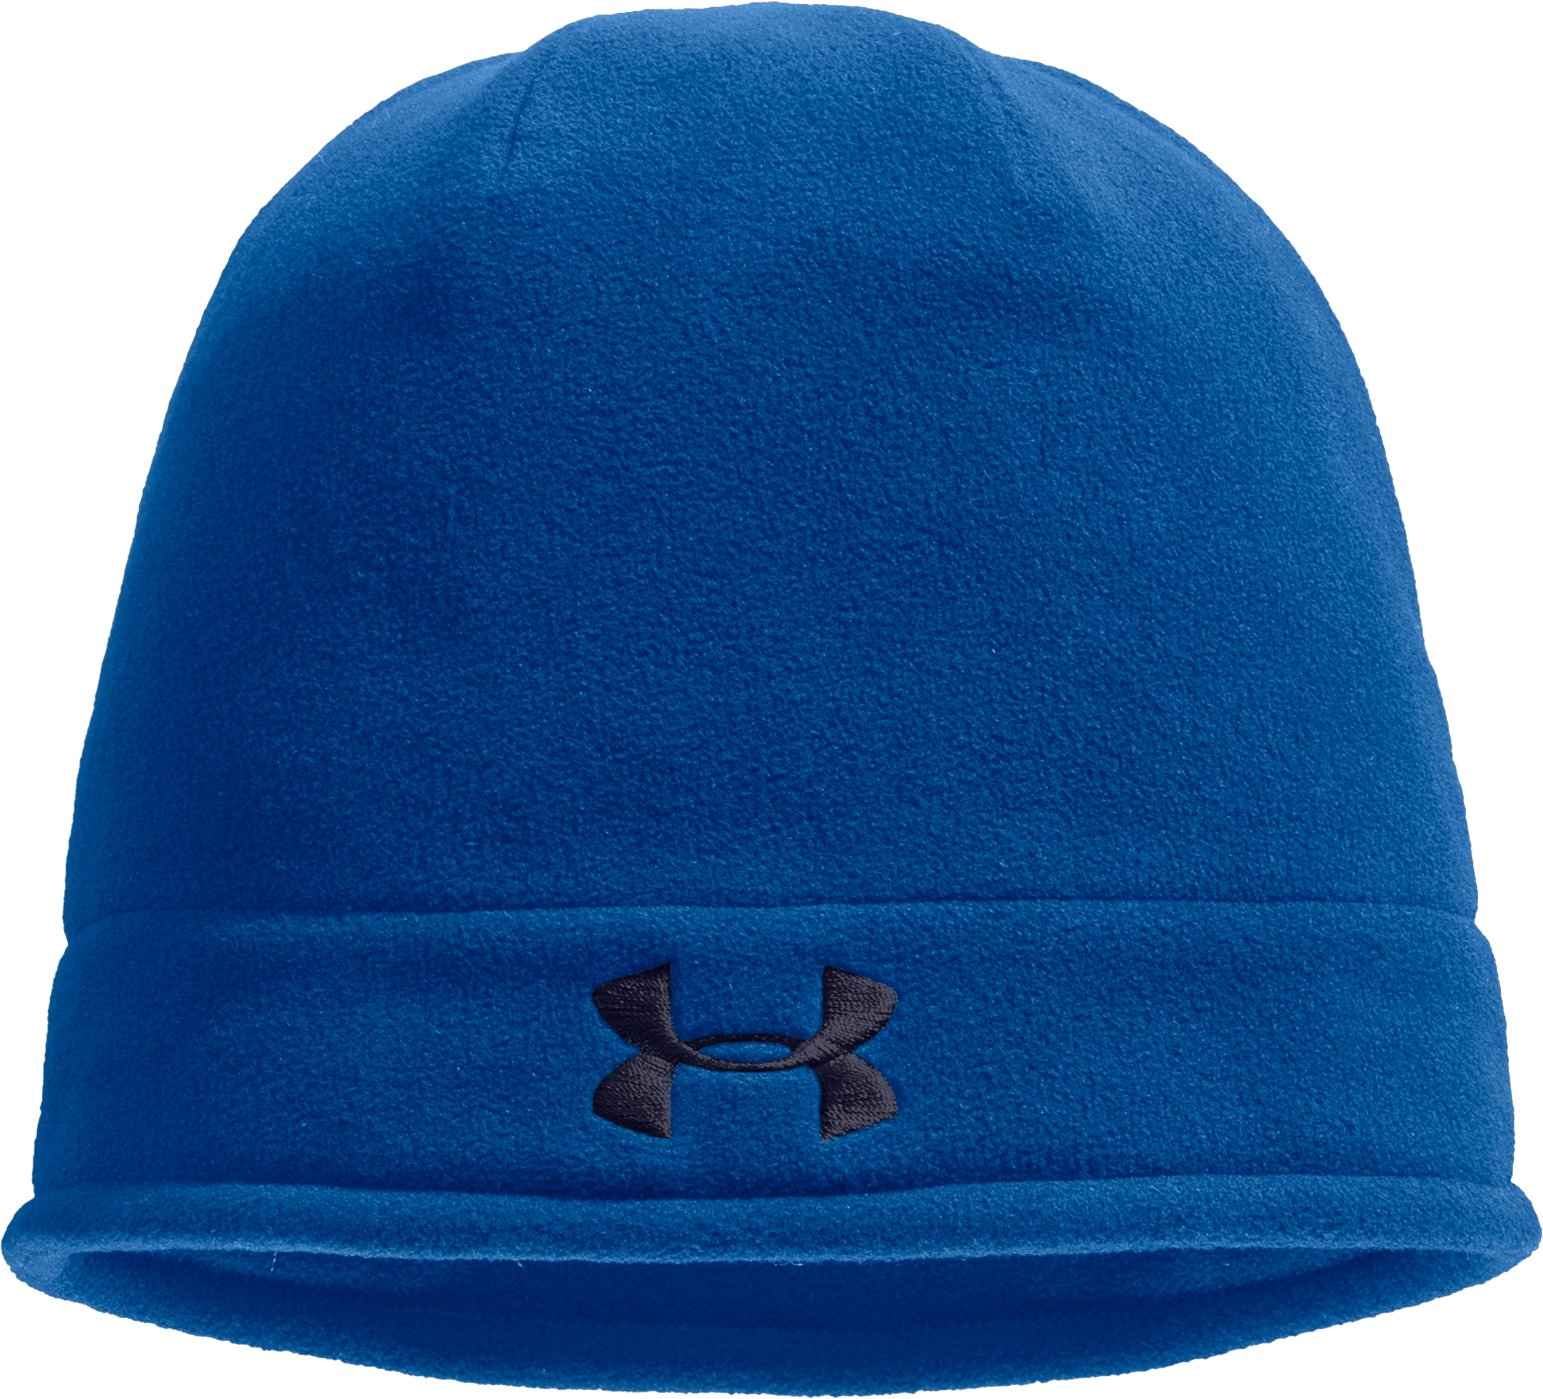 Men's ColdGear® Infrared Fleece Storm Beanie, SUPERIOR BLUE, zoomed image